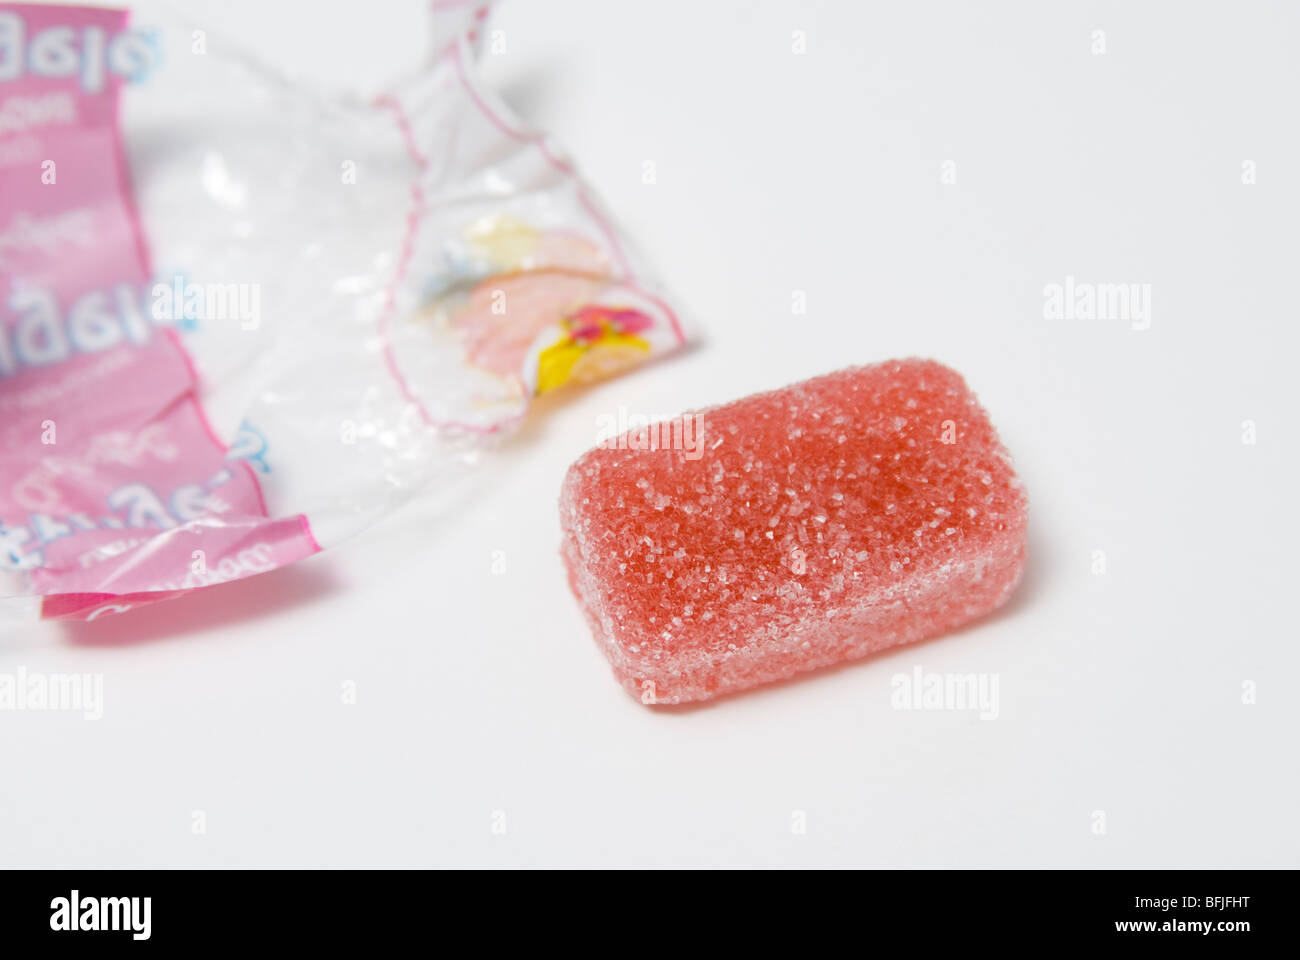 unwrapped gummy candy Stock Photo